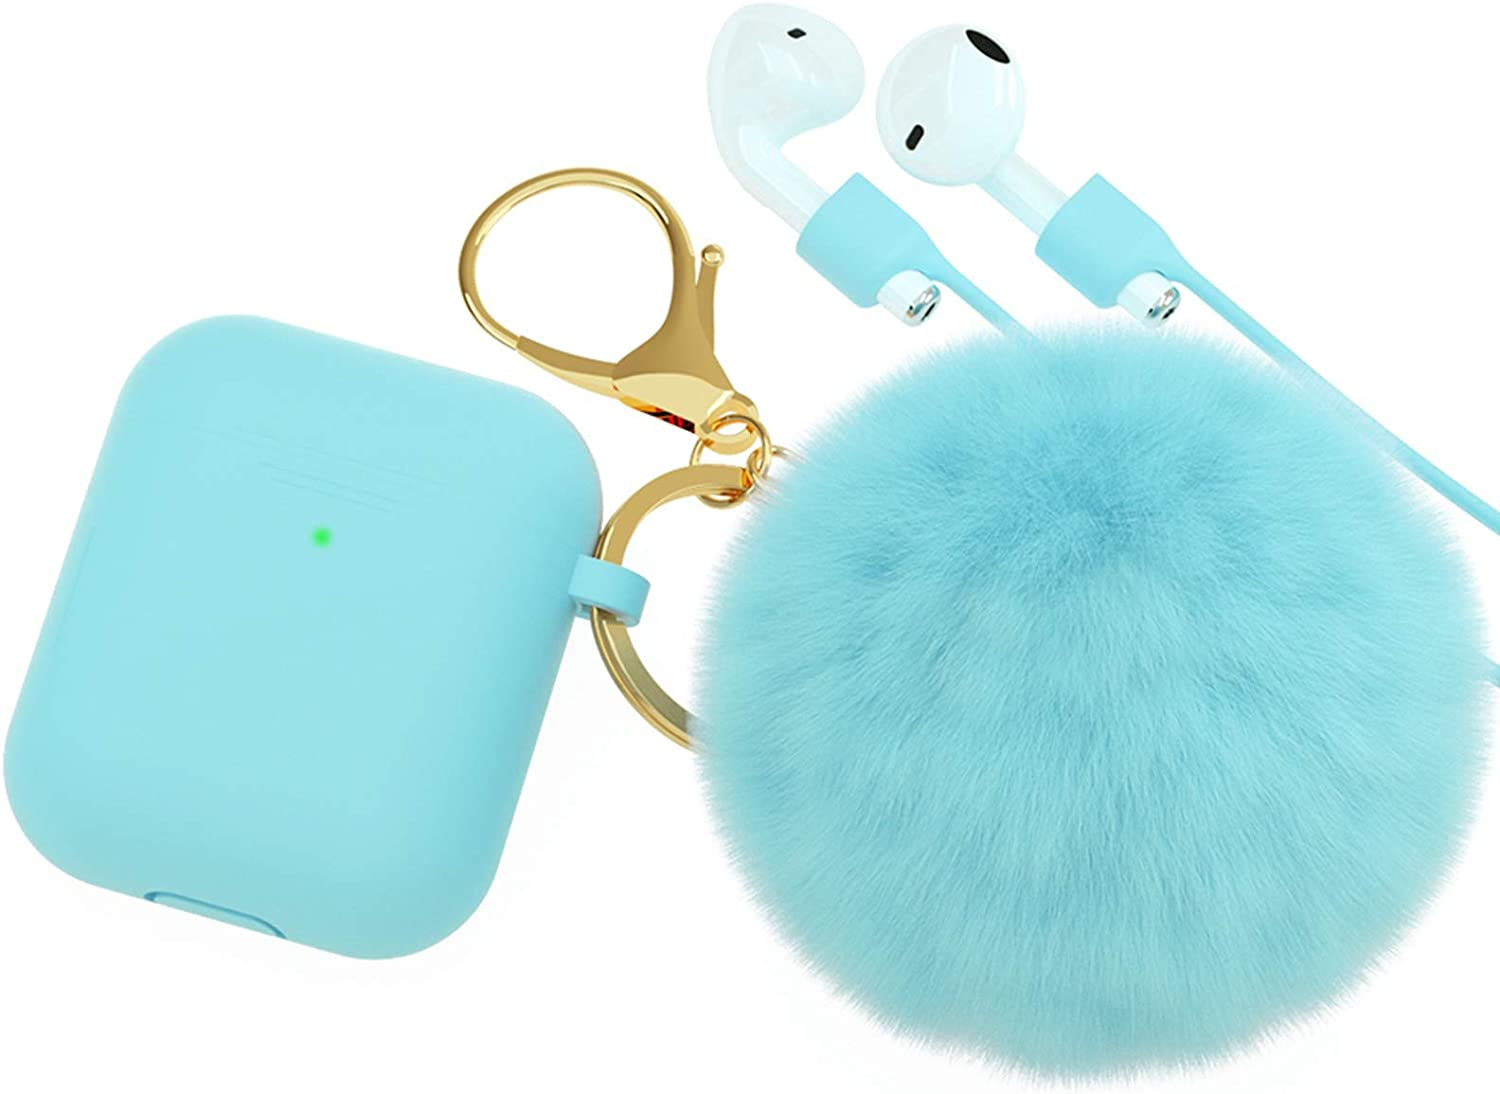 BRG for AirPods Case,Soft Cute Silicone Cover for Apple Airpods 2 & 1 Cases with Pom Pom Fur Ball Keychain/Strap/Earbuds Accessories (Front LED Visible) (Turquoise)